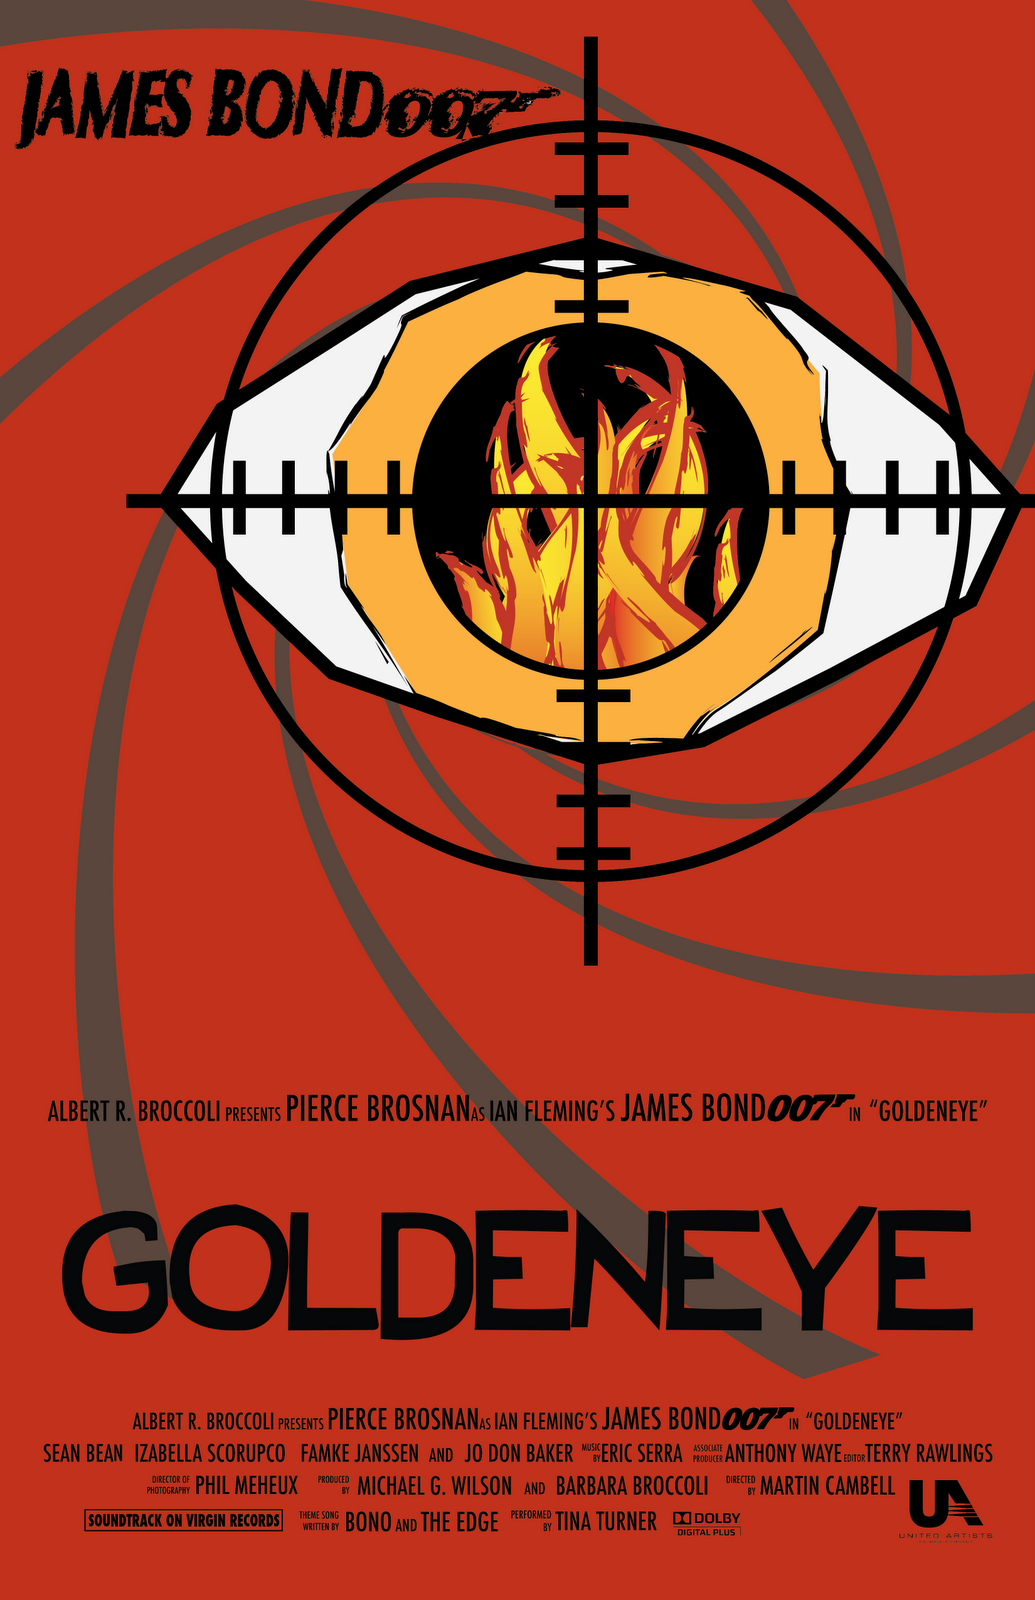 awesome-james-bond-art-posters-target